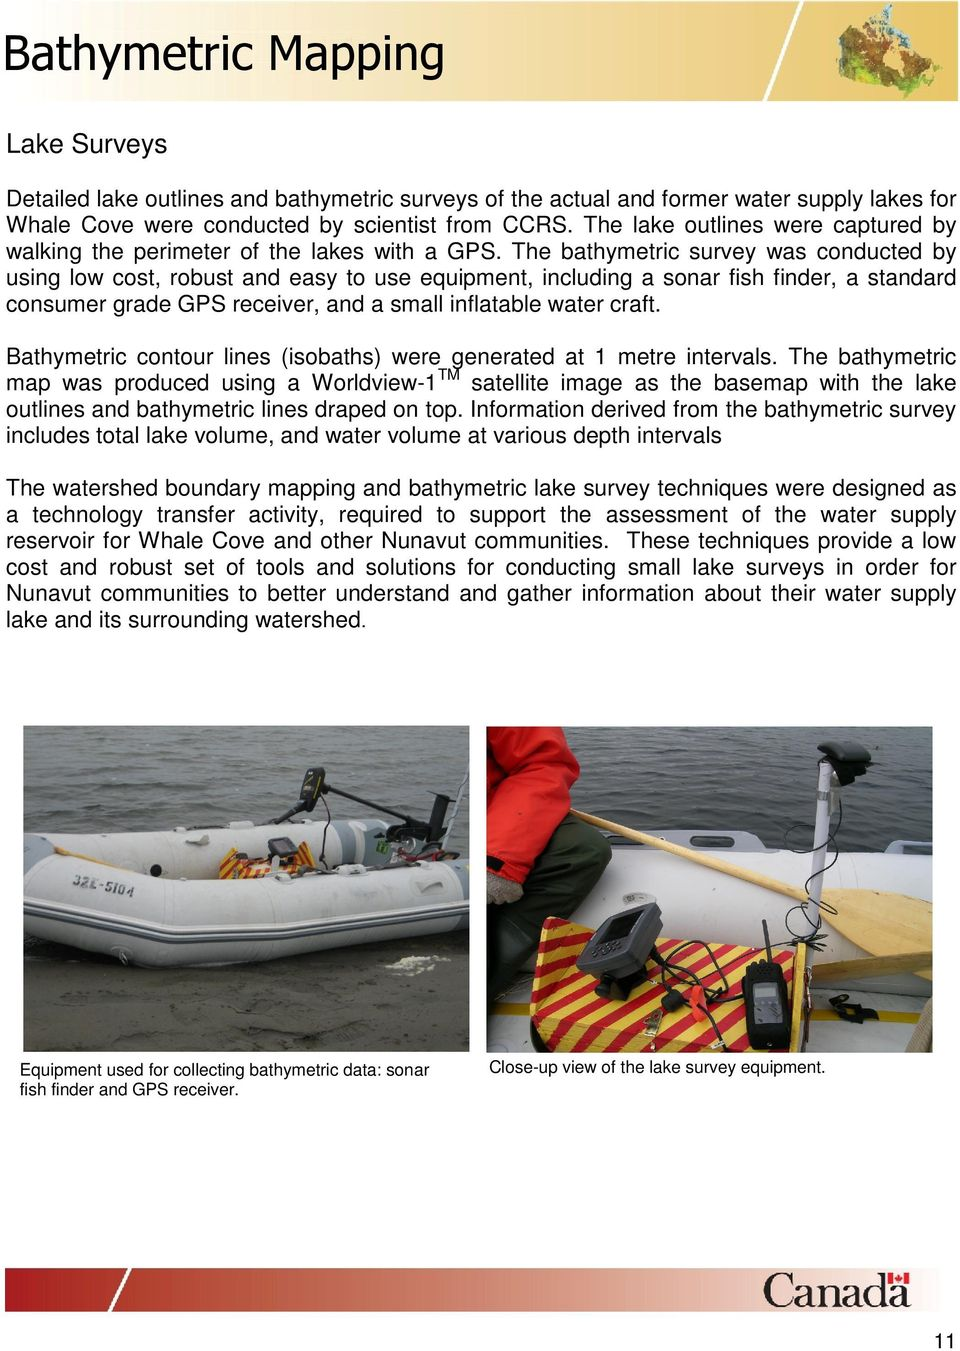 The bathymetric survey was conducted by using low cost, robust and easy to use equipment, including a sonar fish finder, a standard consumer grade GPS receiver, and a small inflatable water craft.